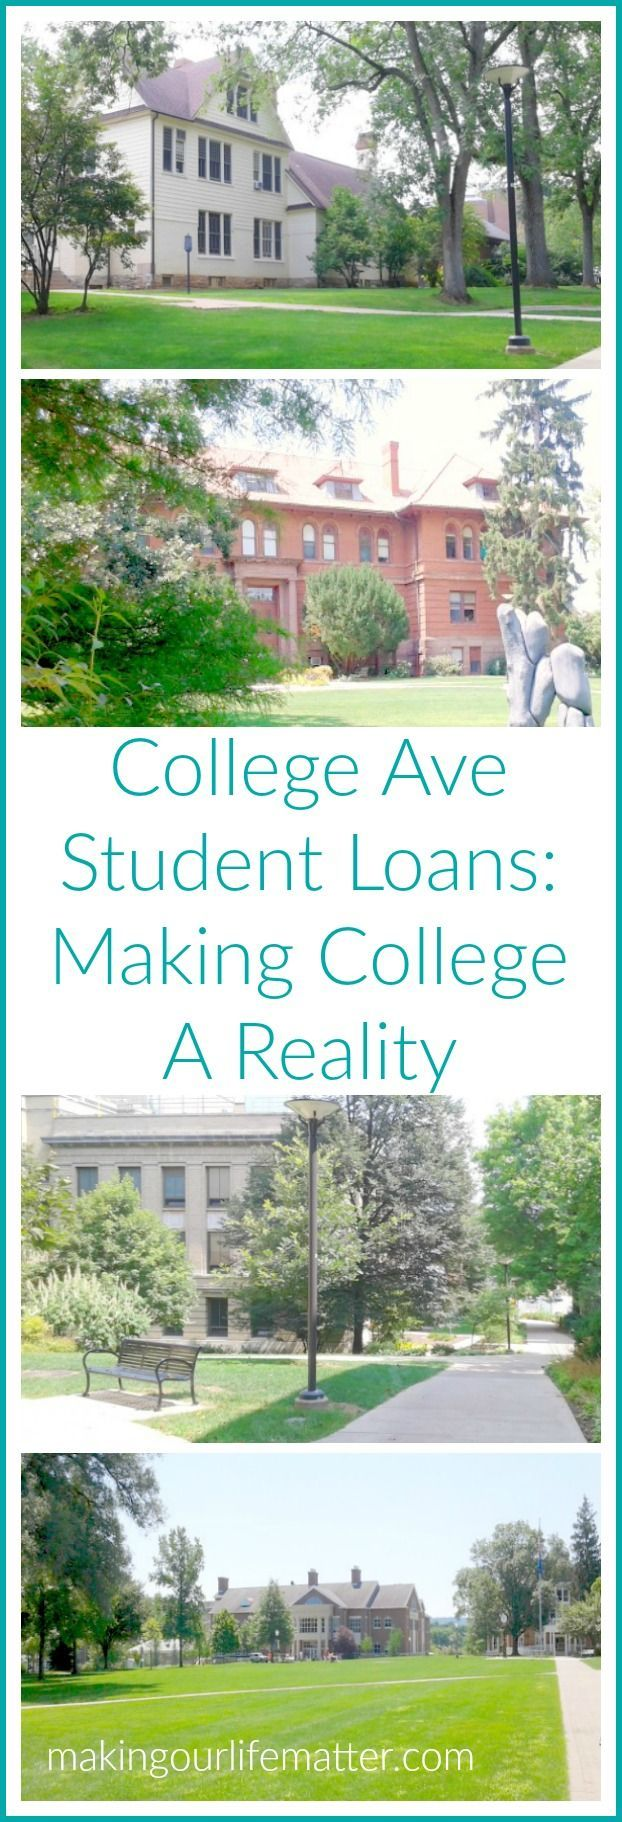 Financing college can be a scary thing. College Ave Student Loans can help. Sharing great information on securing a personal student loan. CollegeAveCreditCheckUp {AD}